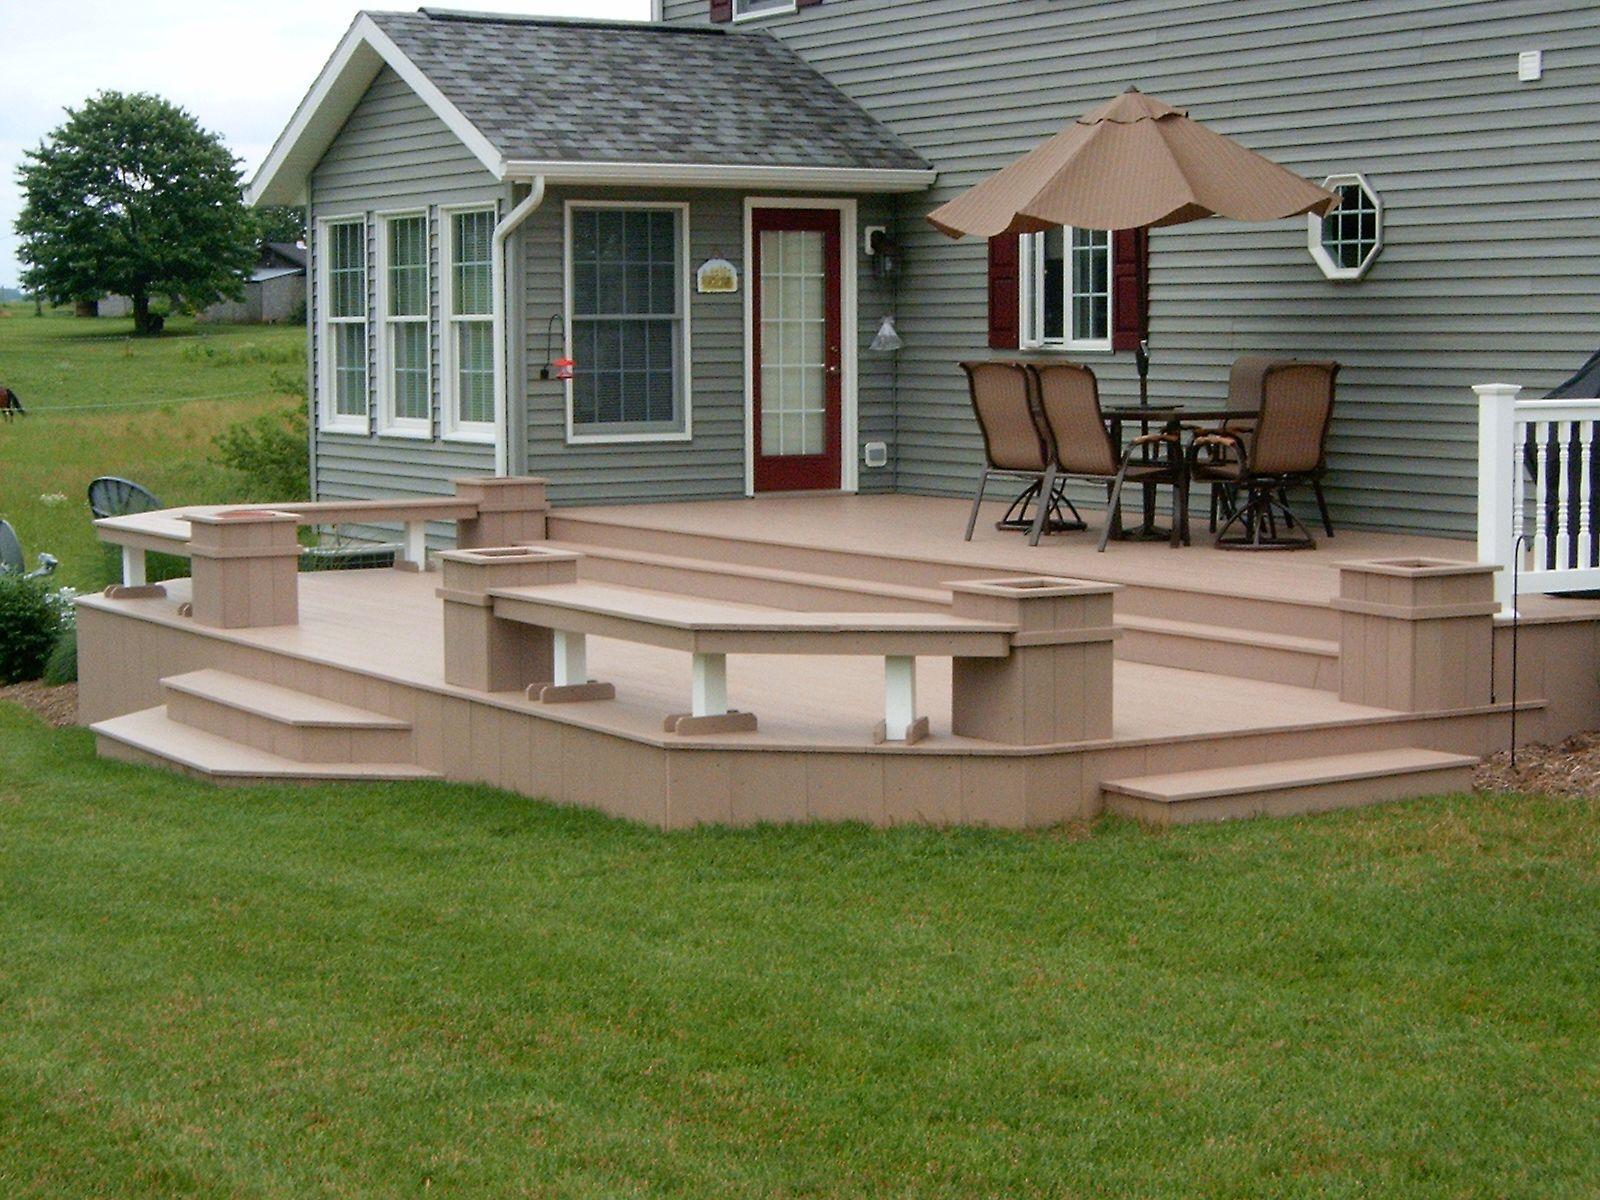 Outdoor Decks Designed To Suit Your Needs And Your Budget.